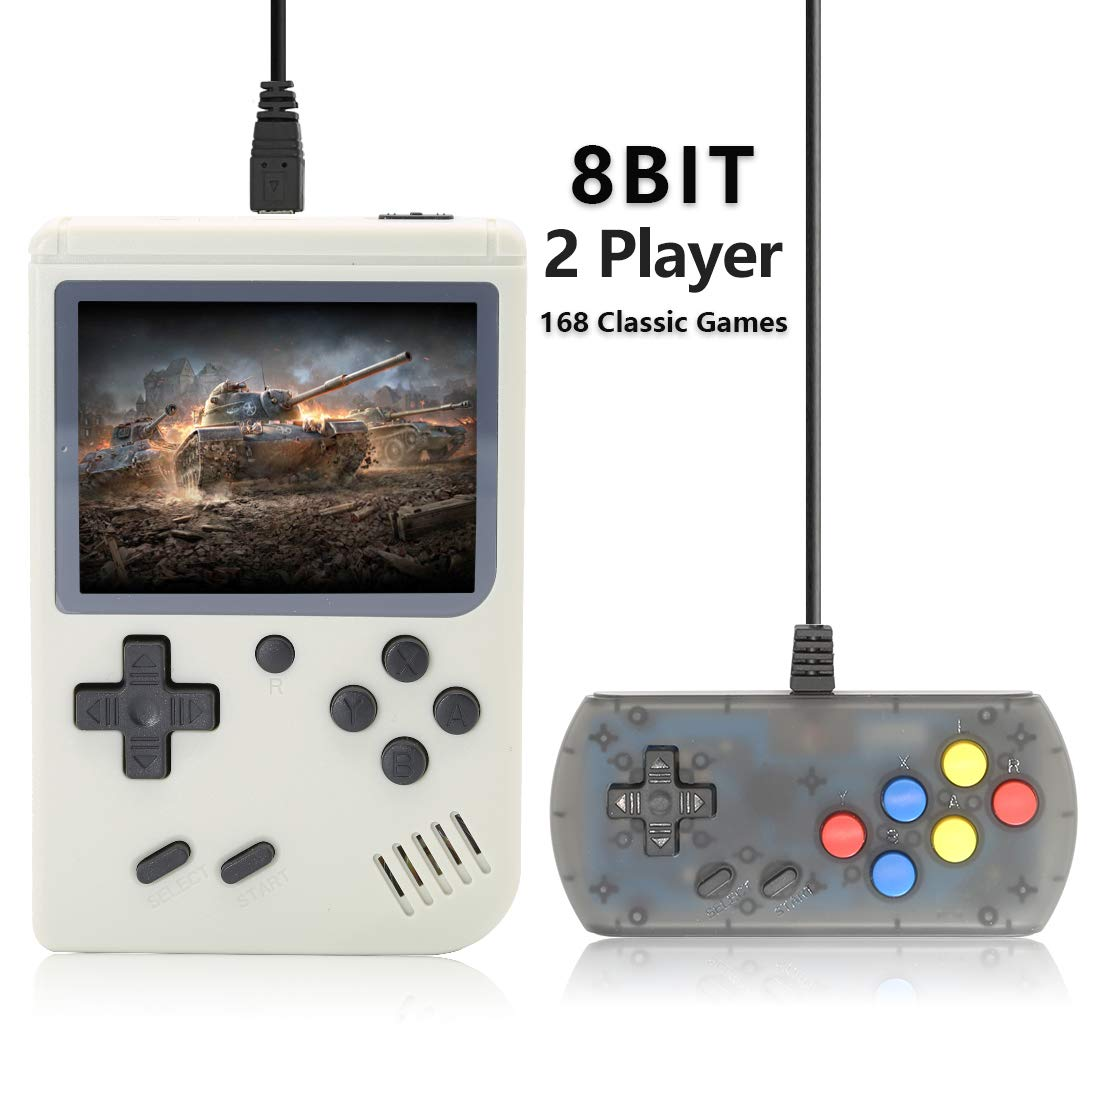 AKTOUGST Retro Handheld Game Console FC System 168 Classic Game Portable Video Game 3 Inch 2 Player Plus Extra Joystick Game Console Support on TV,Presend for Kid Adult, (White) by AKTOUGST (Image #1)